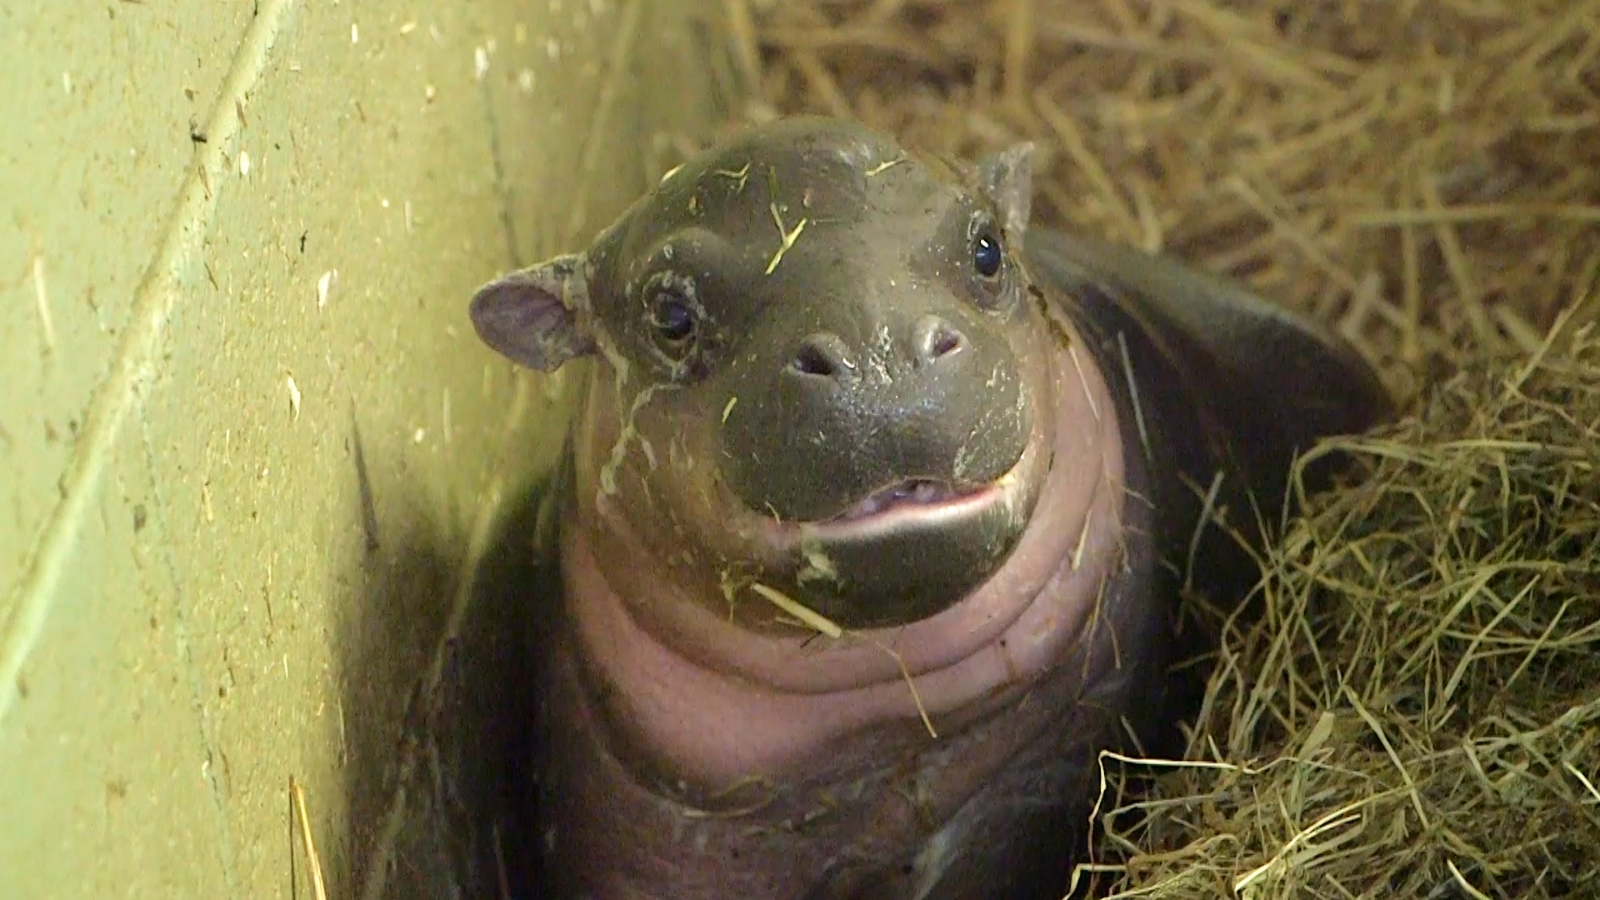 Cute Baby Wallpaper Backgrounds Endangered Baby Pygmy Hippo Born At Whipsnade Zoo